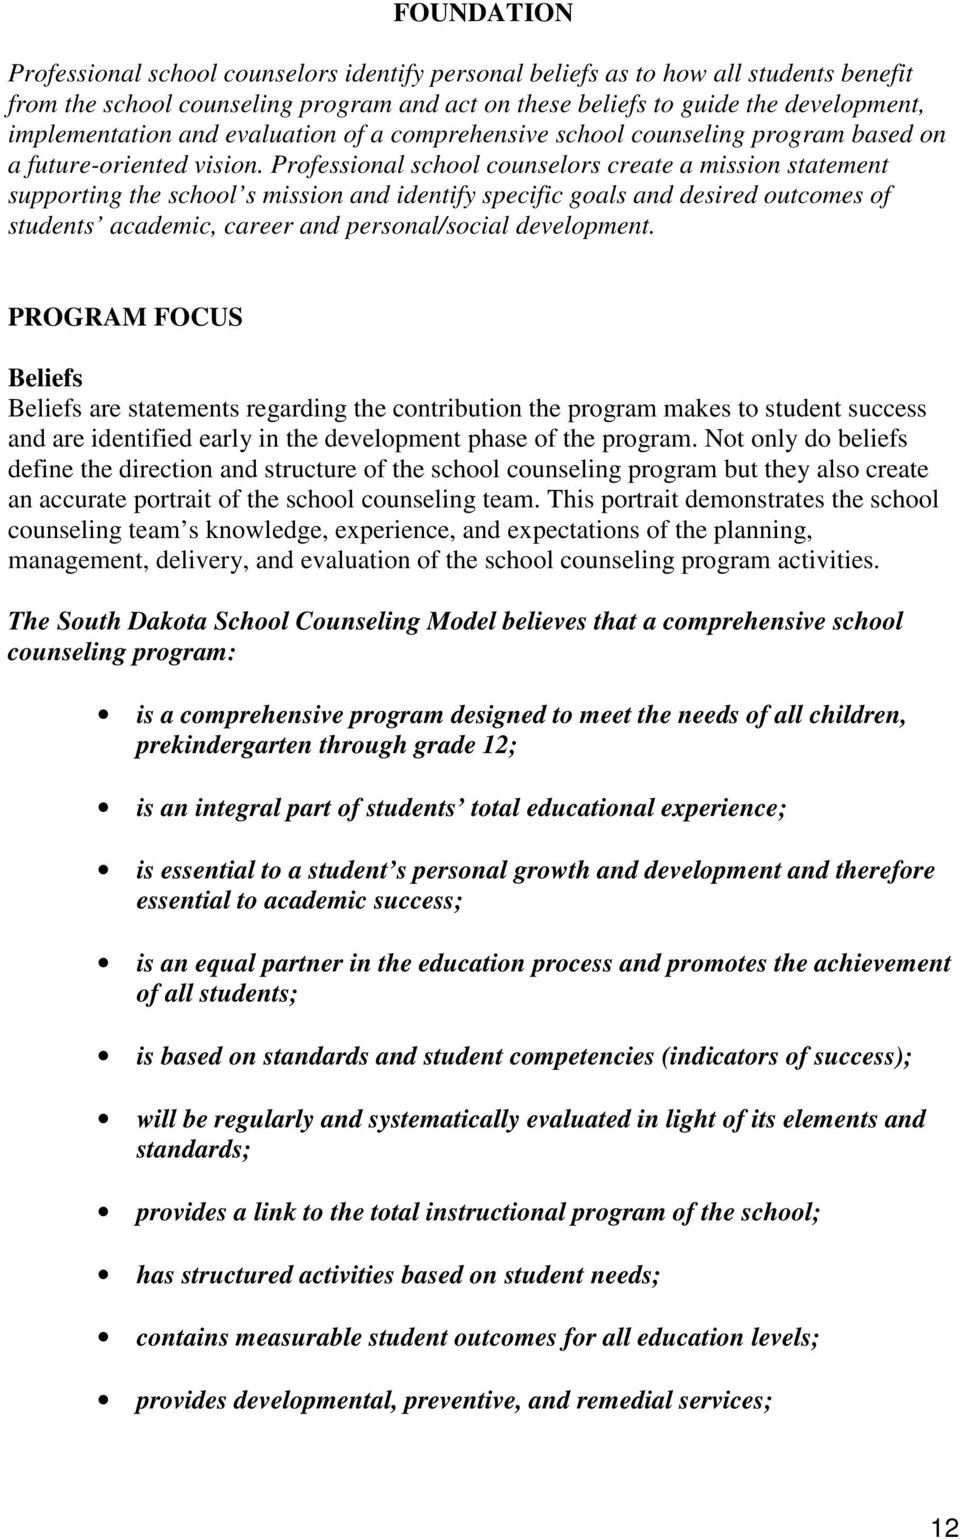 Professional school counselors create a mission statement supporting the school s mission and identify specific goals and desired outcomes of students academic, career and personal/social development.